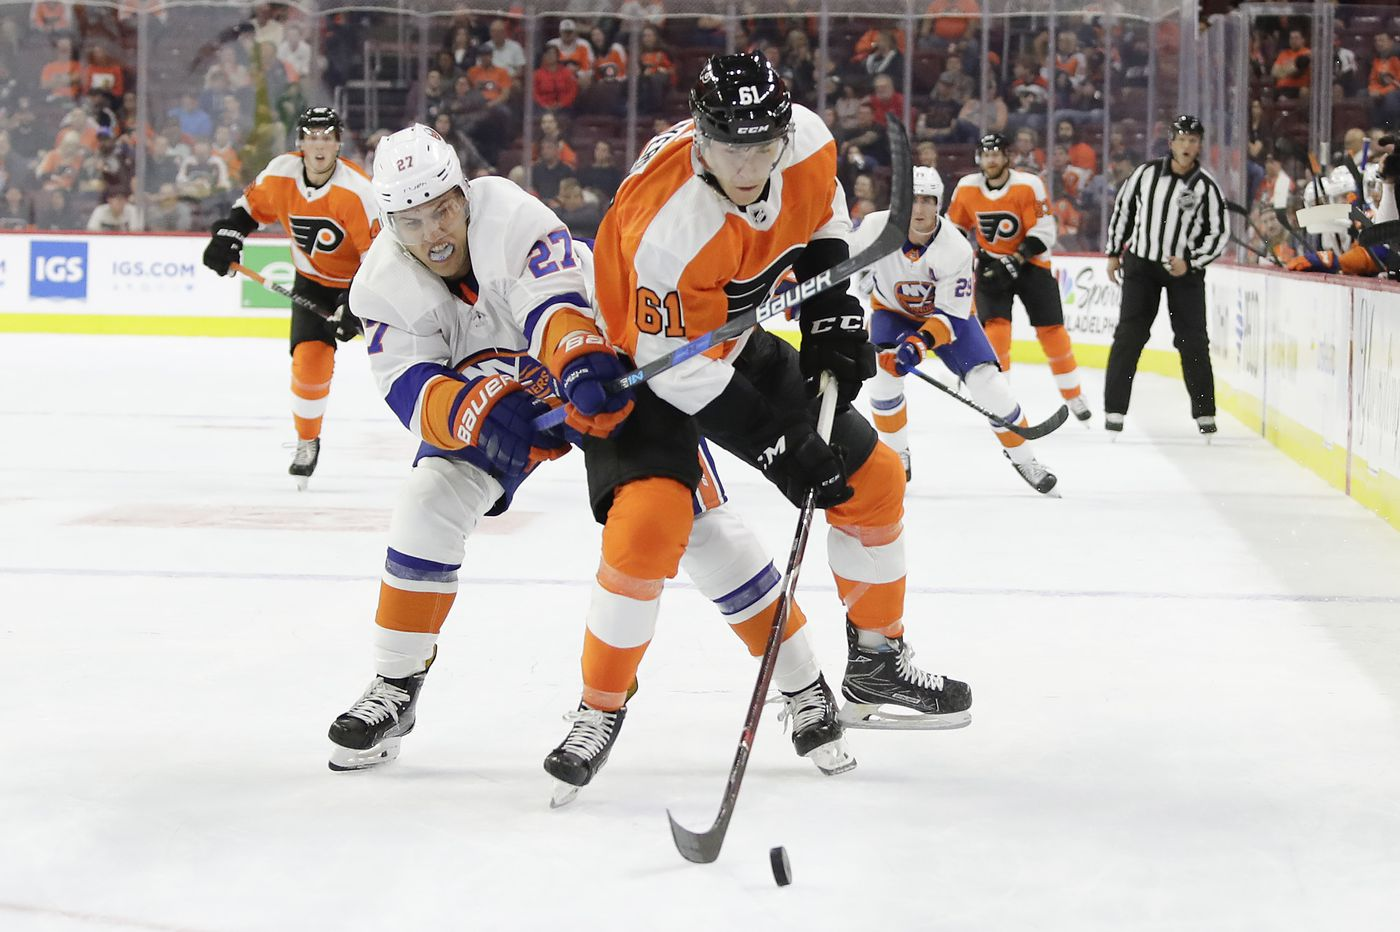 Big defenseman Phil Myers making impression on Flyers GM